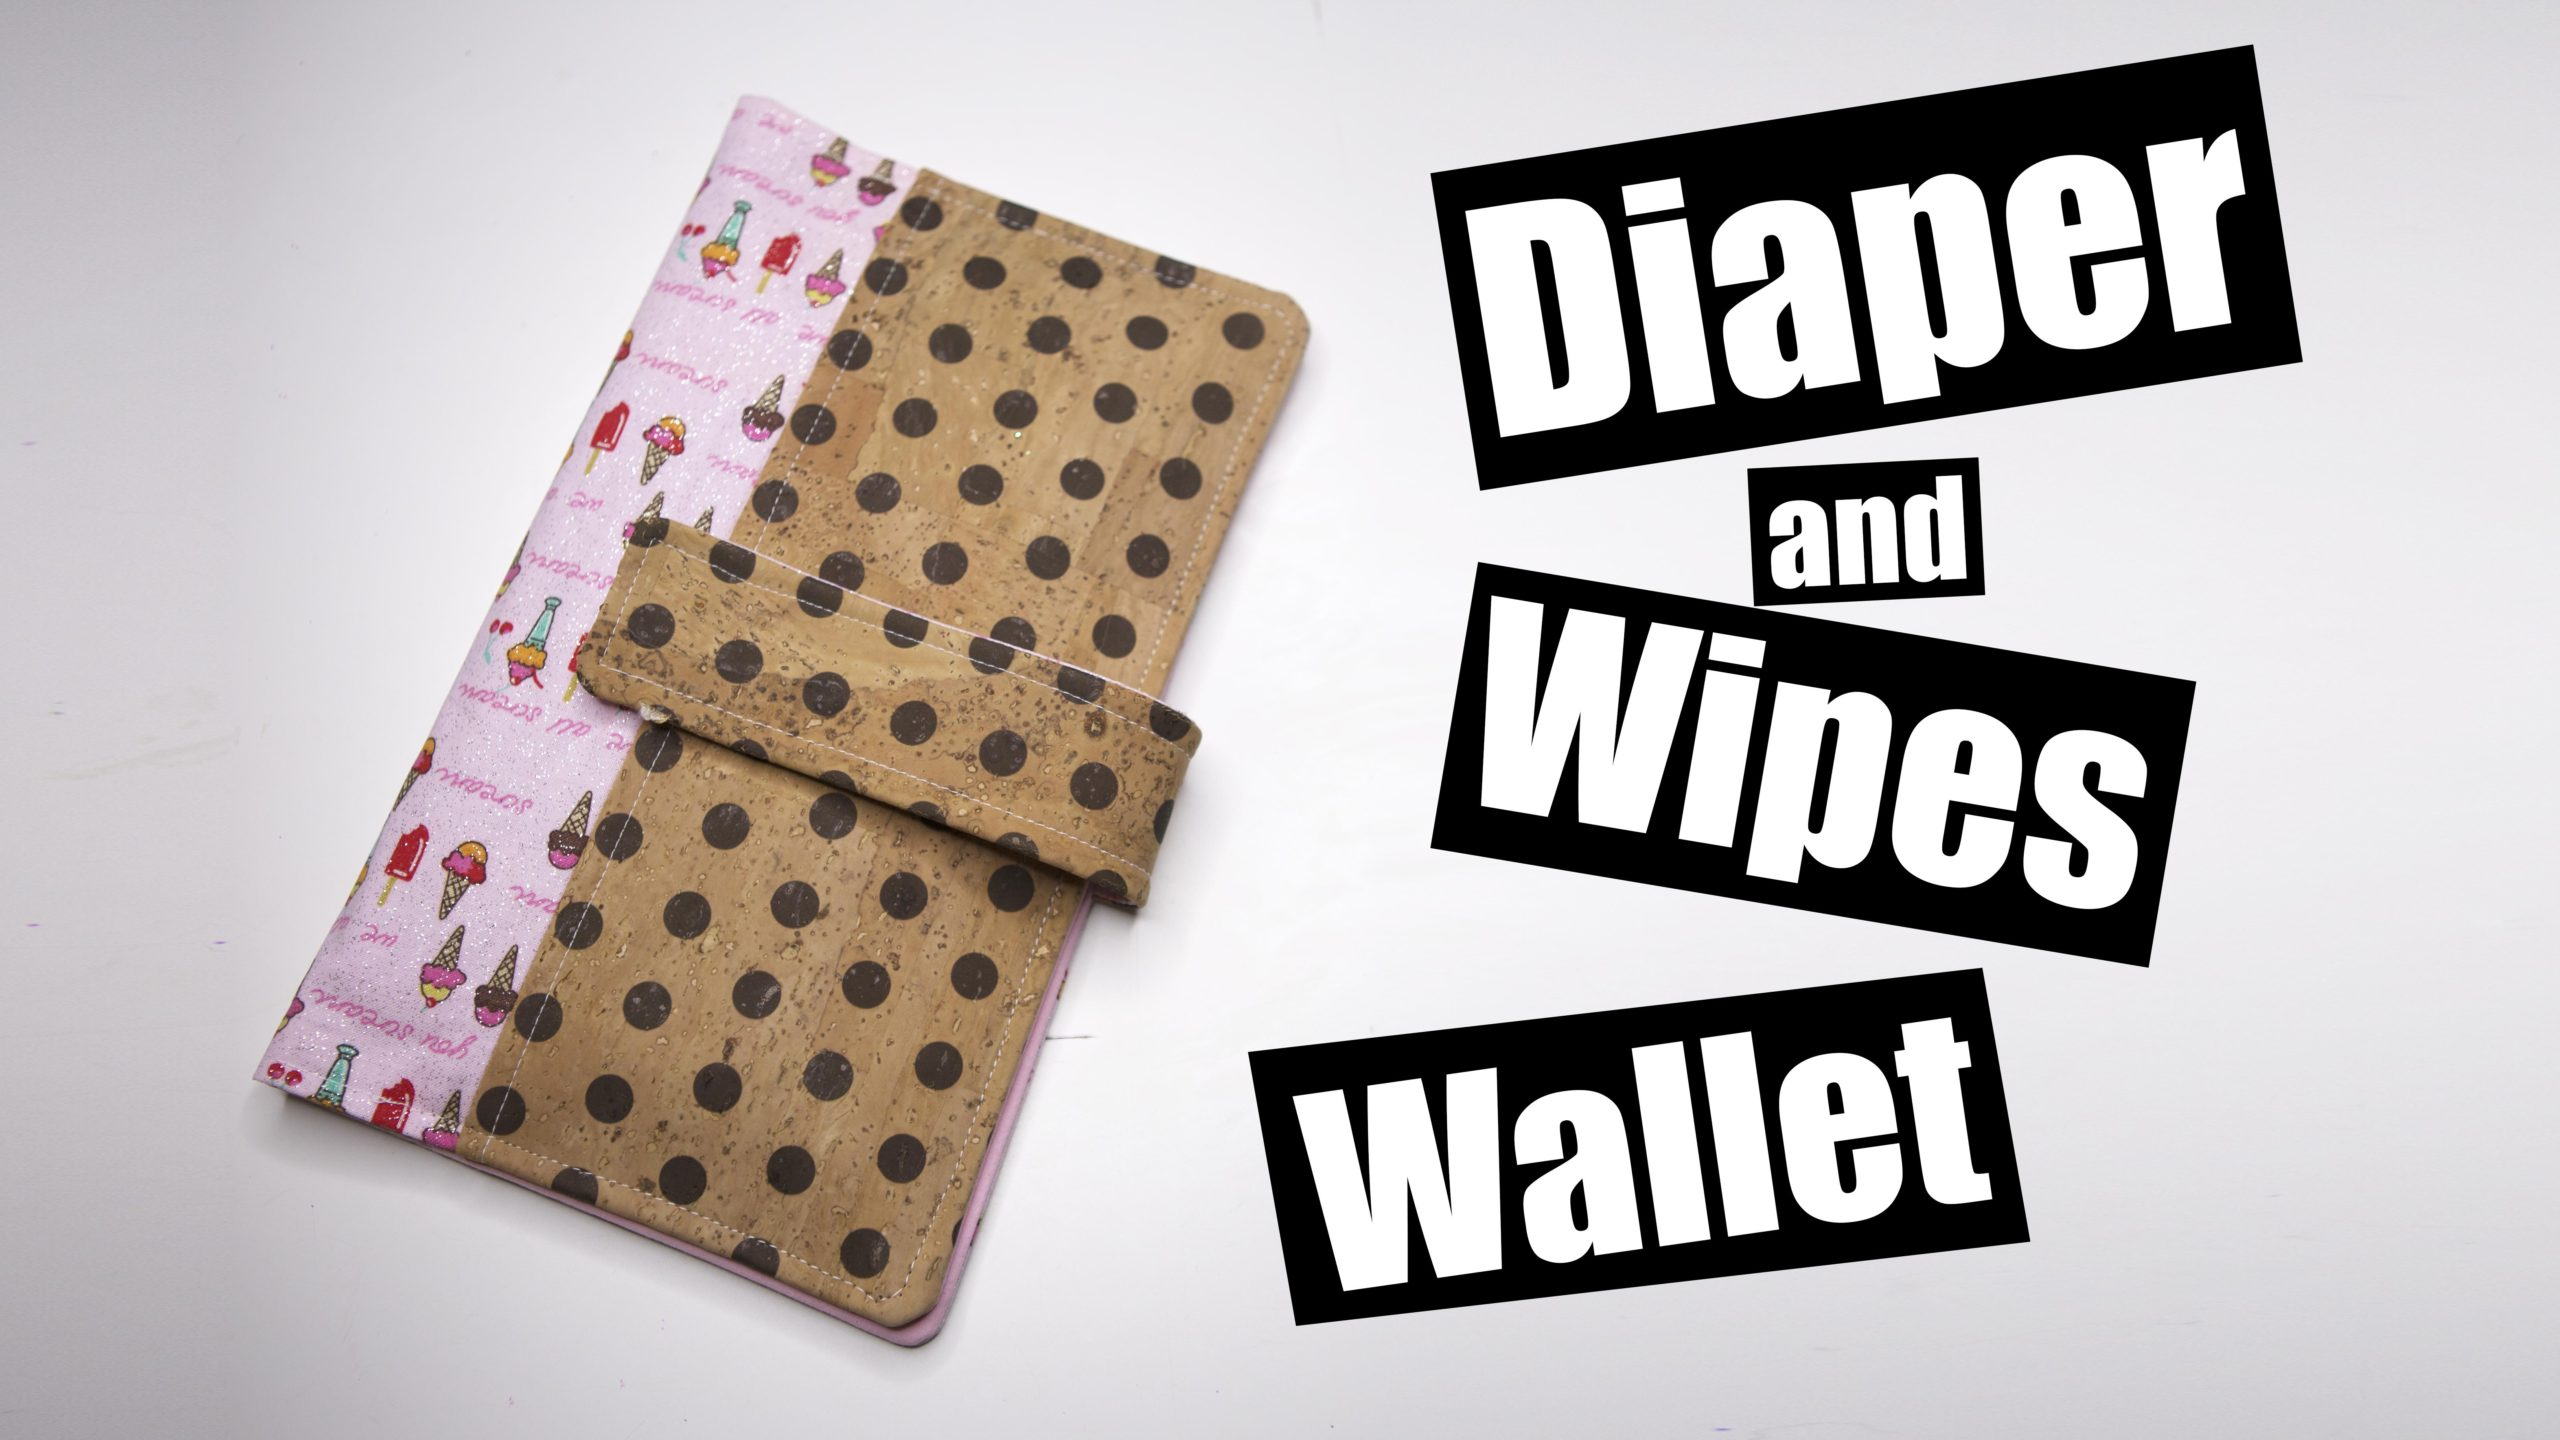 Diaper and Wipes wallet